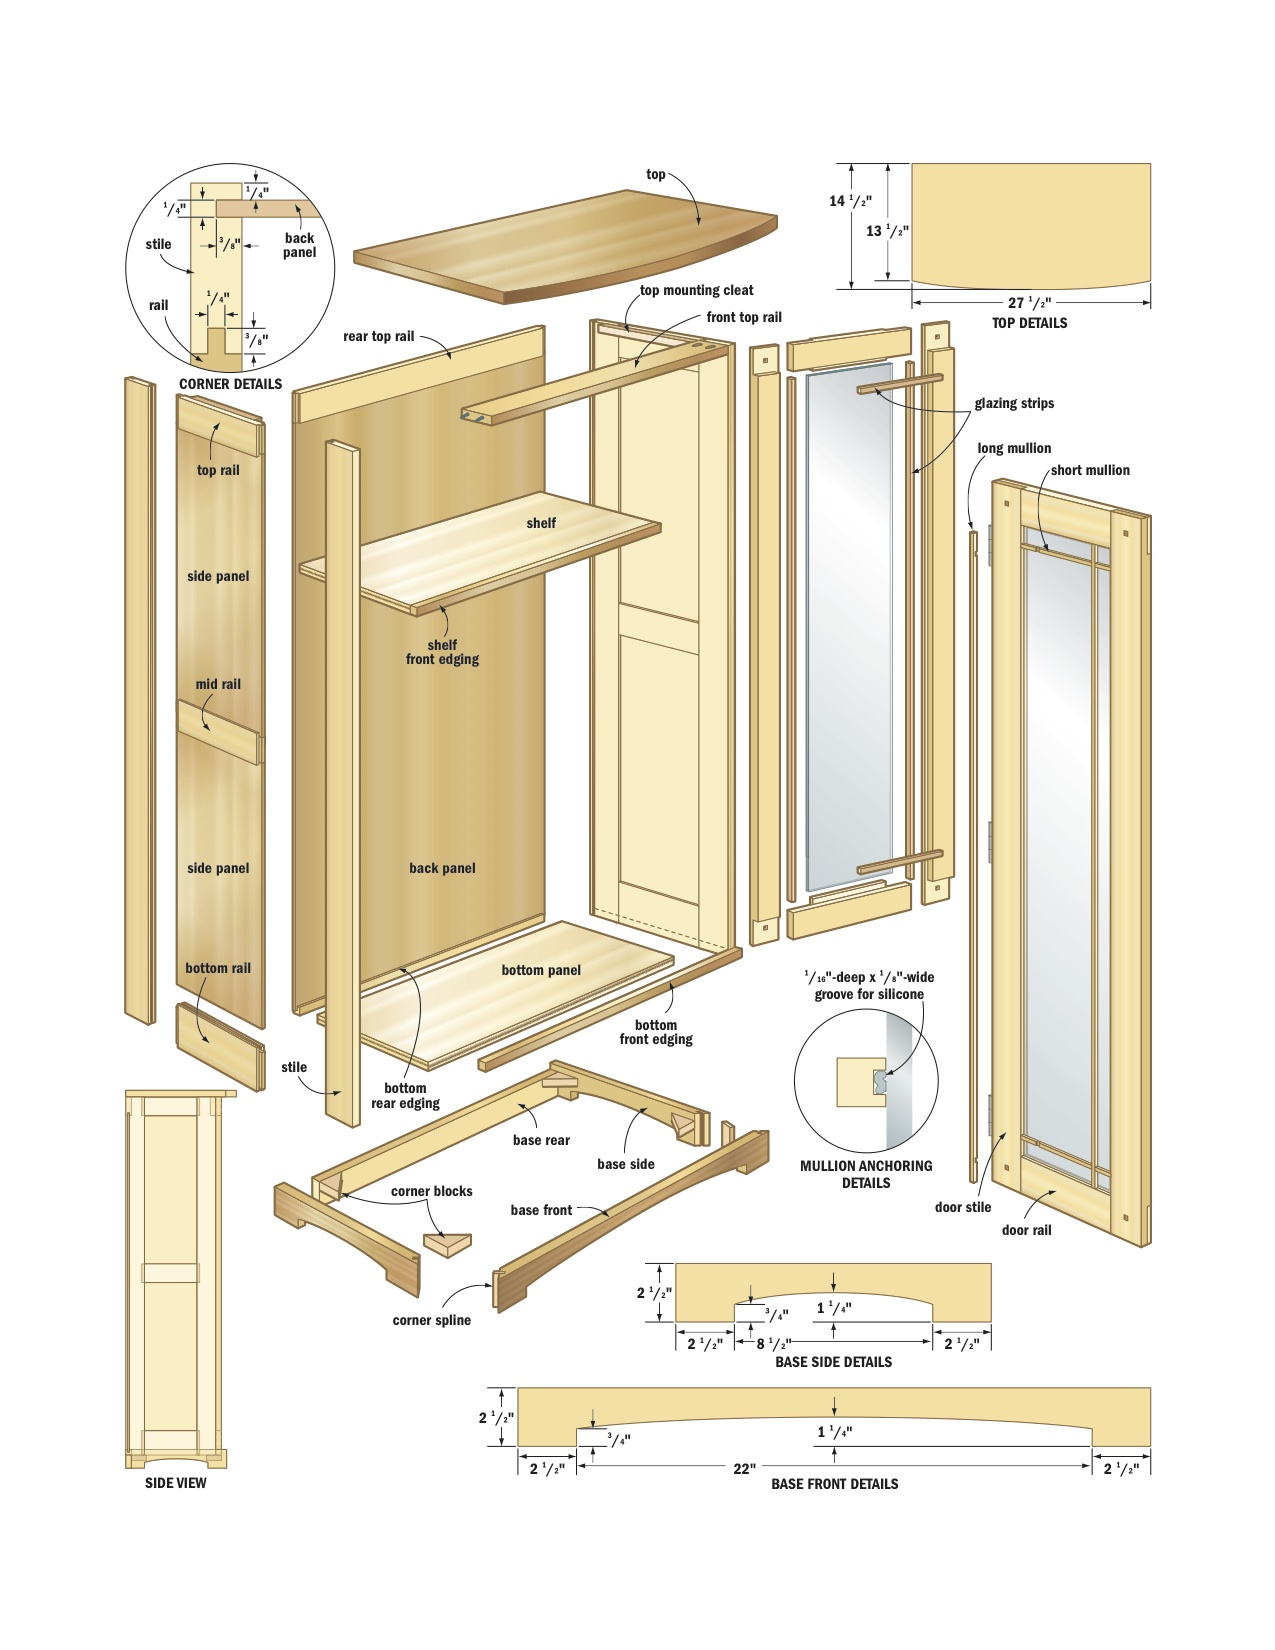 Woodworking kitchen cabinet plans woodworking PDF Free Download